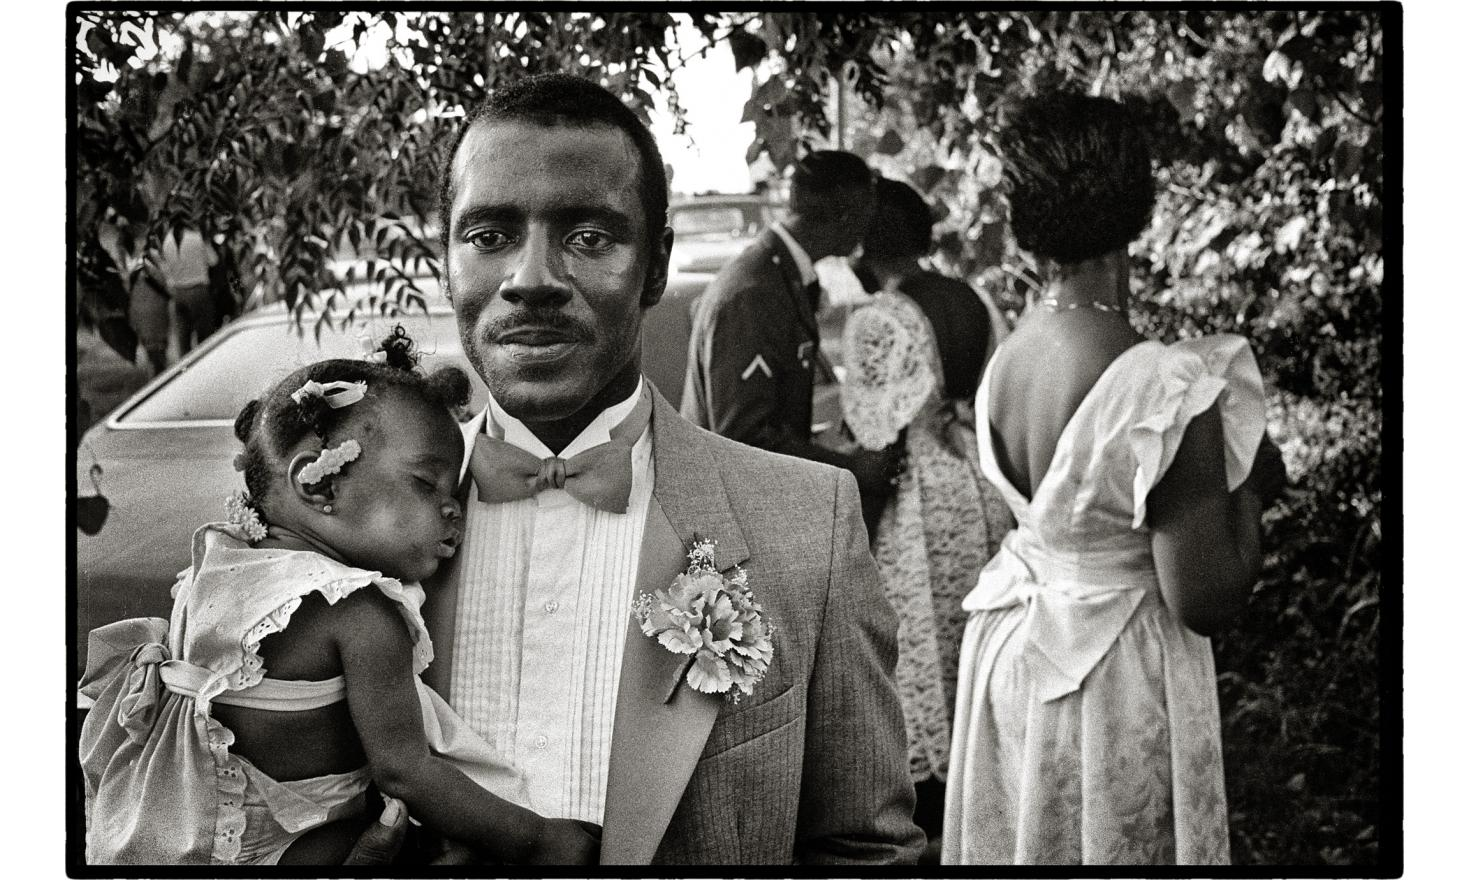 Guest and baby at a weeding. Greenville, Mississippi - 1986.